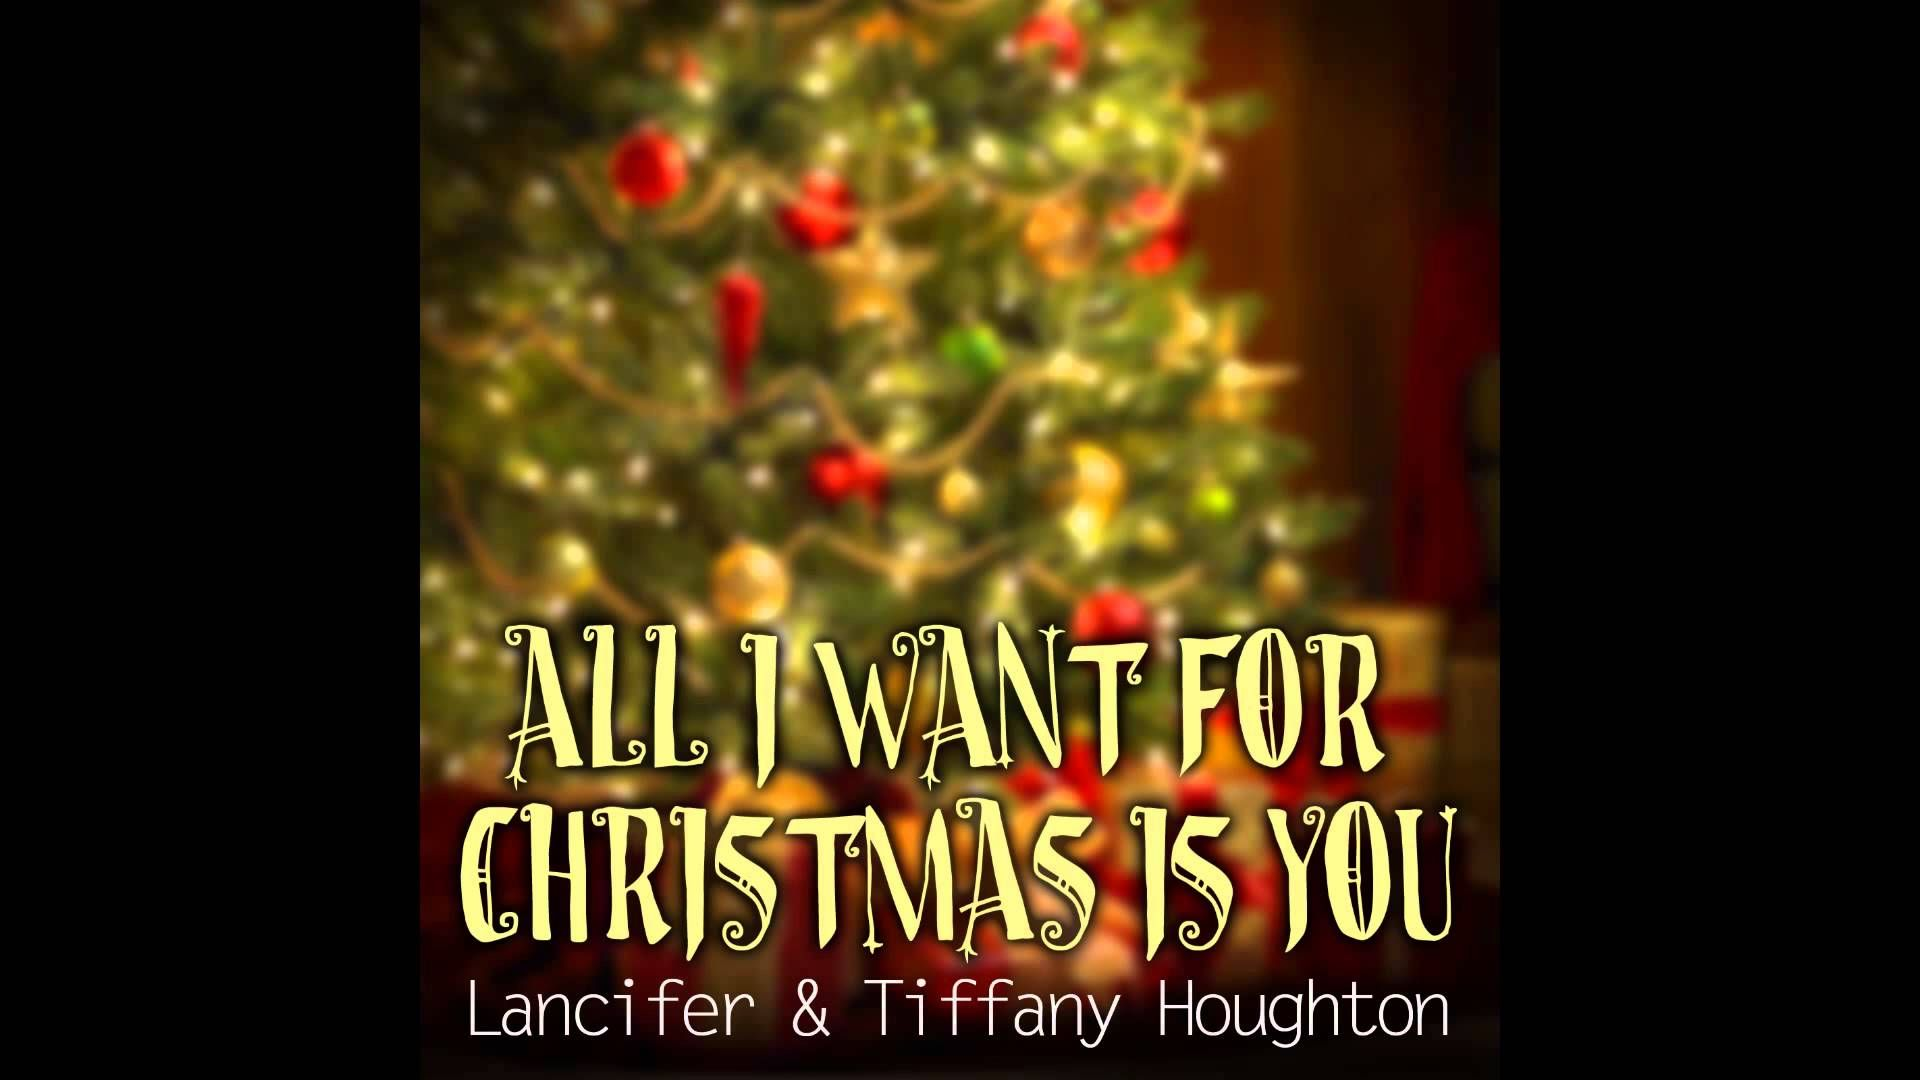 All I Want For Christmas Is You Original.All I Want For Christmas Is You Original Song Lancifer